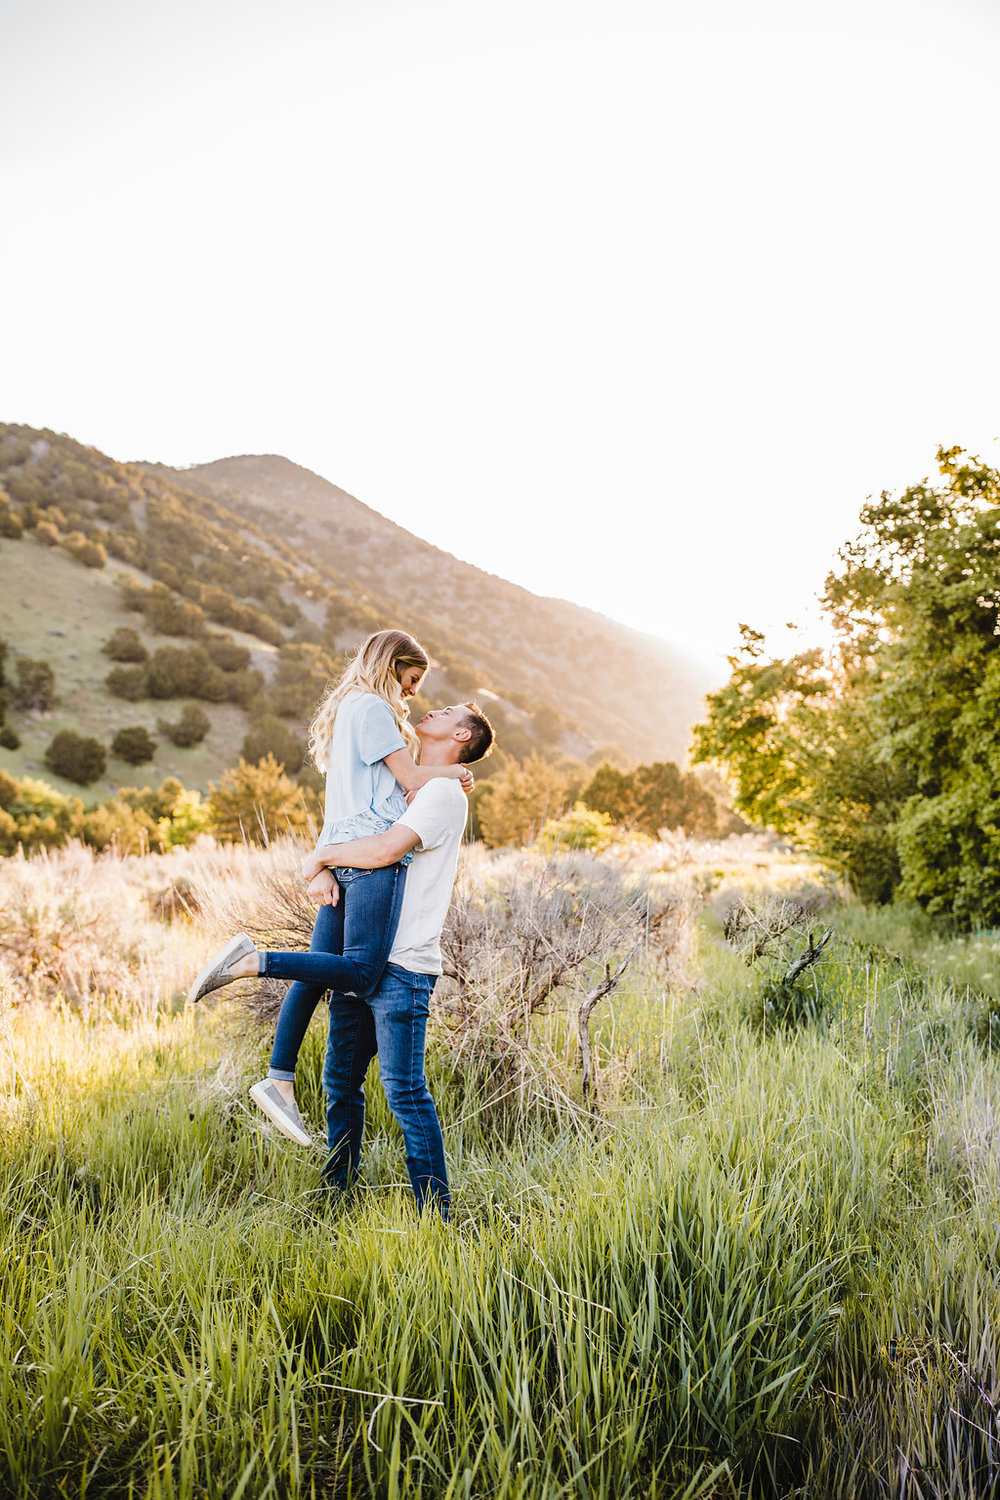 best engagement photographer logan utah professional couples photography mountains field of flowers